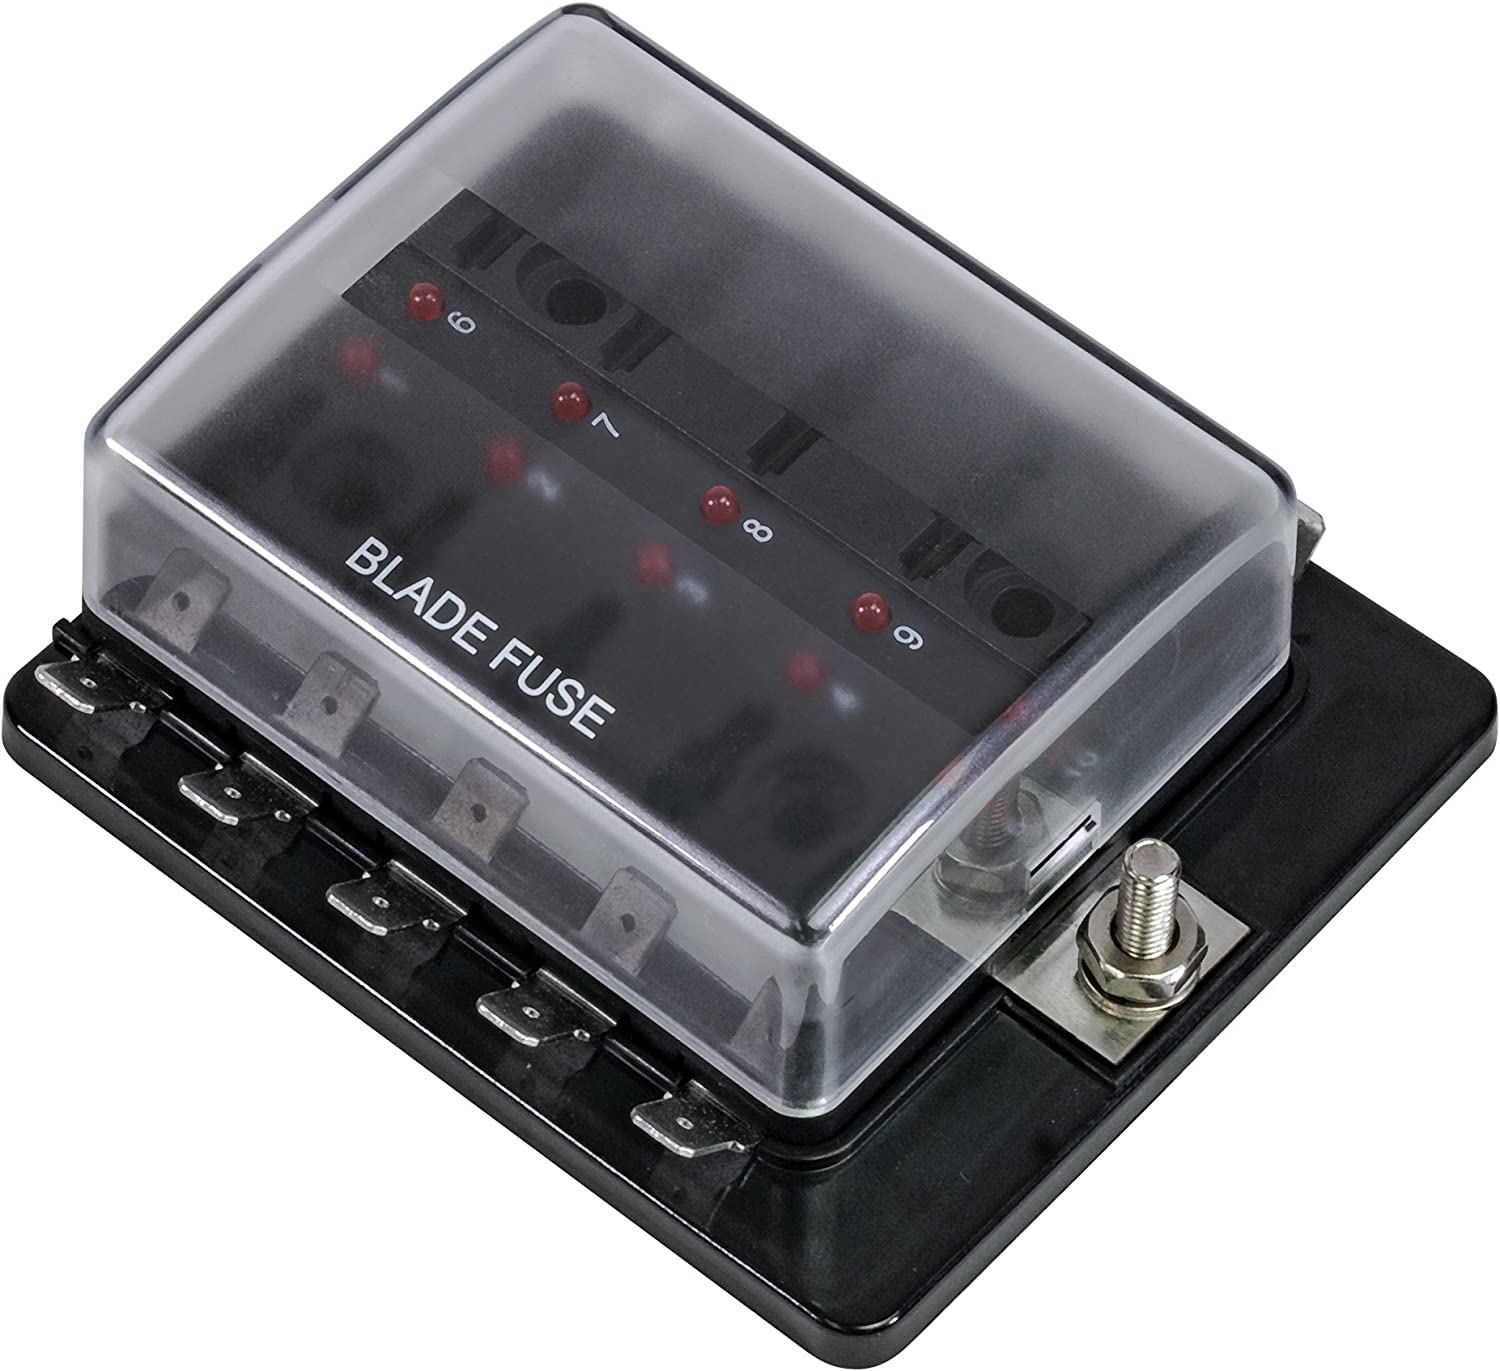 [QMVU_8575]  Amazon.com: 10 Way Blade Fuse Box for Automotive [ATC/ATO Blade Fuses] [100  Amp][LED Indicator] [Protection Cover] [10-30V DC; 12V] Auto Marine Fuse  Block: Automotive | 10 Amp Fuse Box |  | Amazon.com